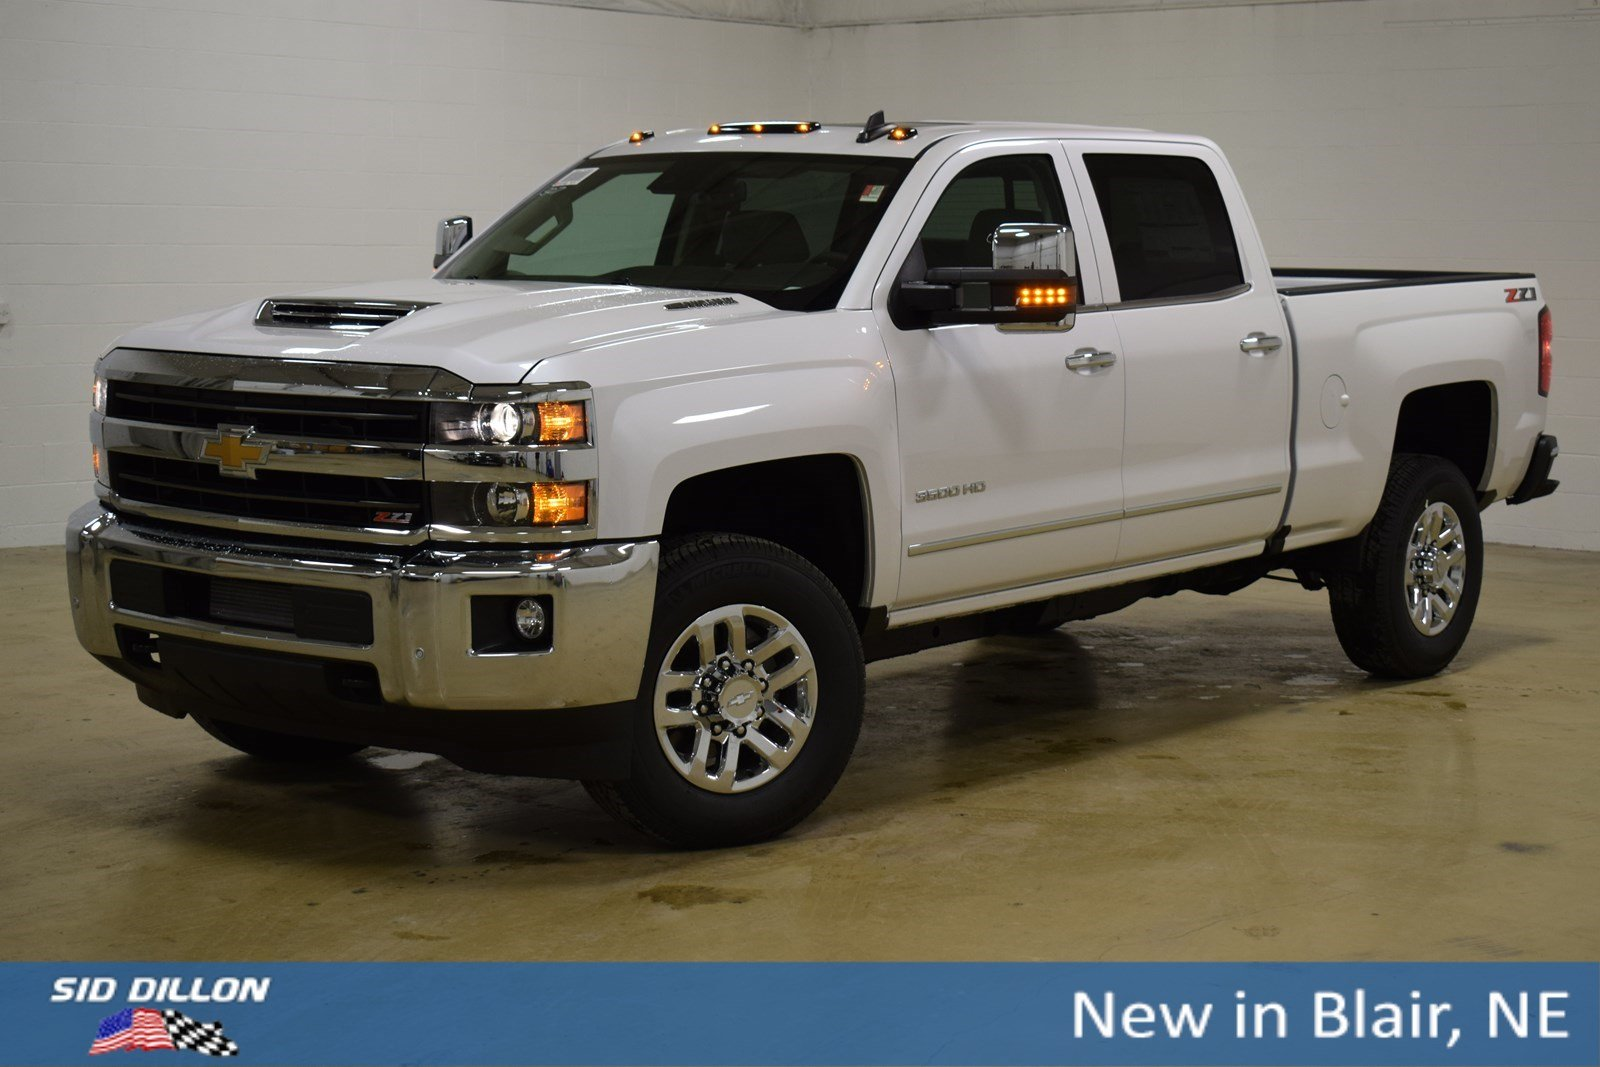 e2385c20e6 New 2019 Chevrolet Silverado 3500HD LTZ Crew Cab in Blair  319211 ...